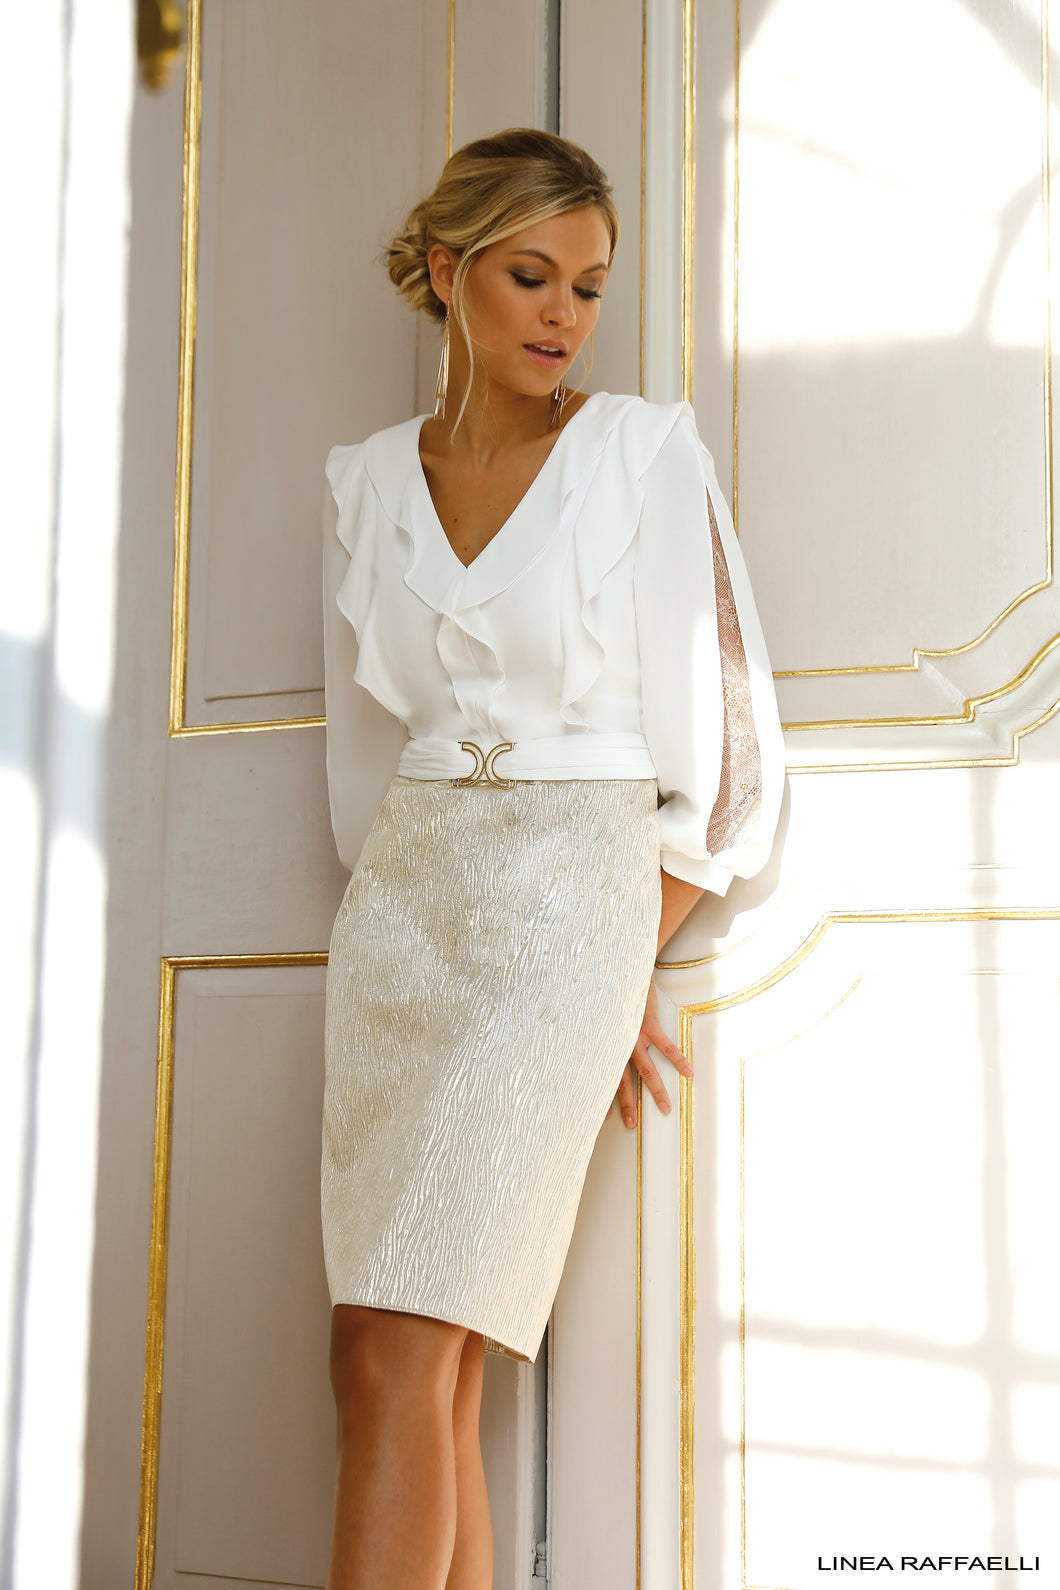 Linea Rafffaelli Cream/Gold Dress